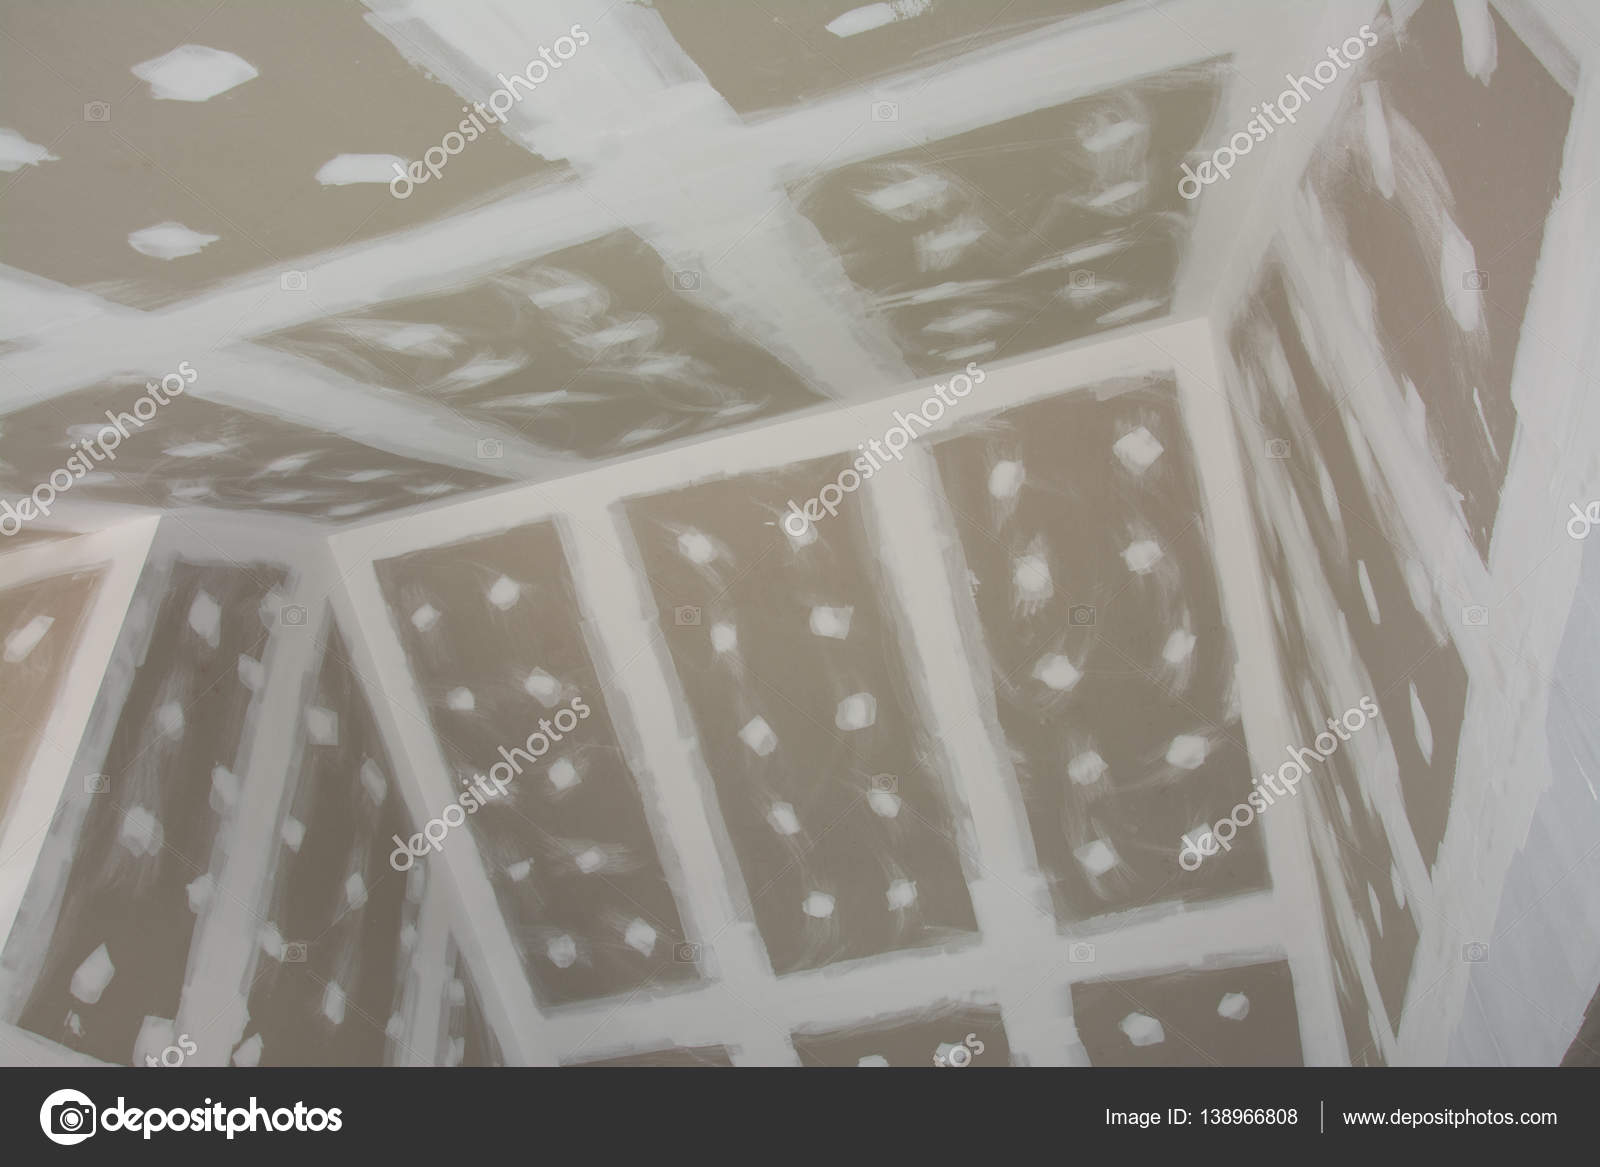 Gypsum Board Ceiling Of House At Construction Site Stock Photo